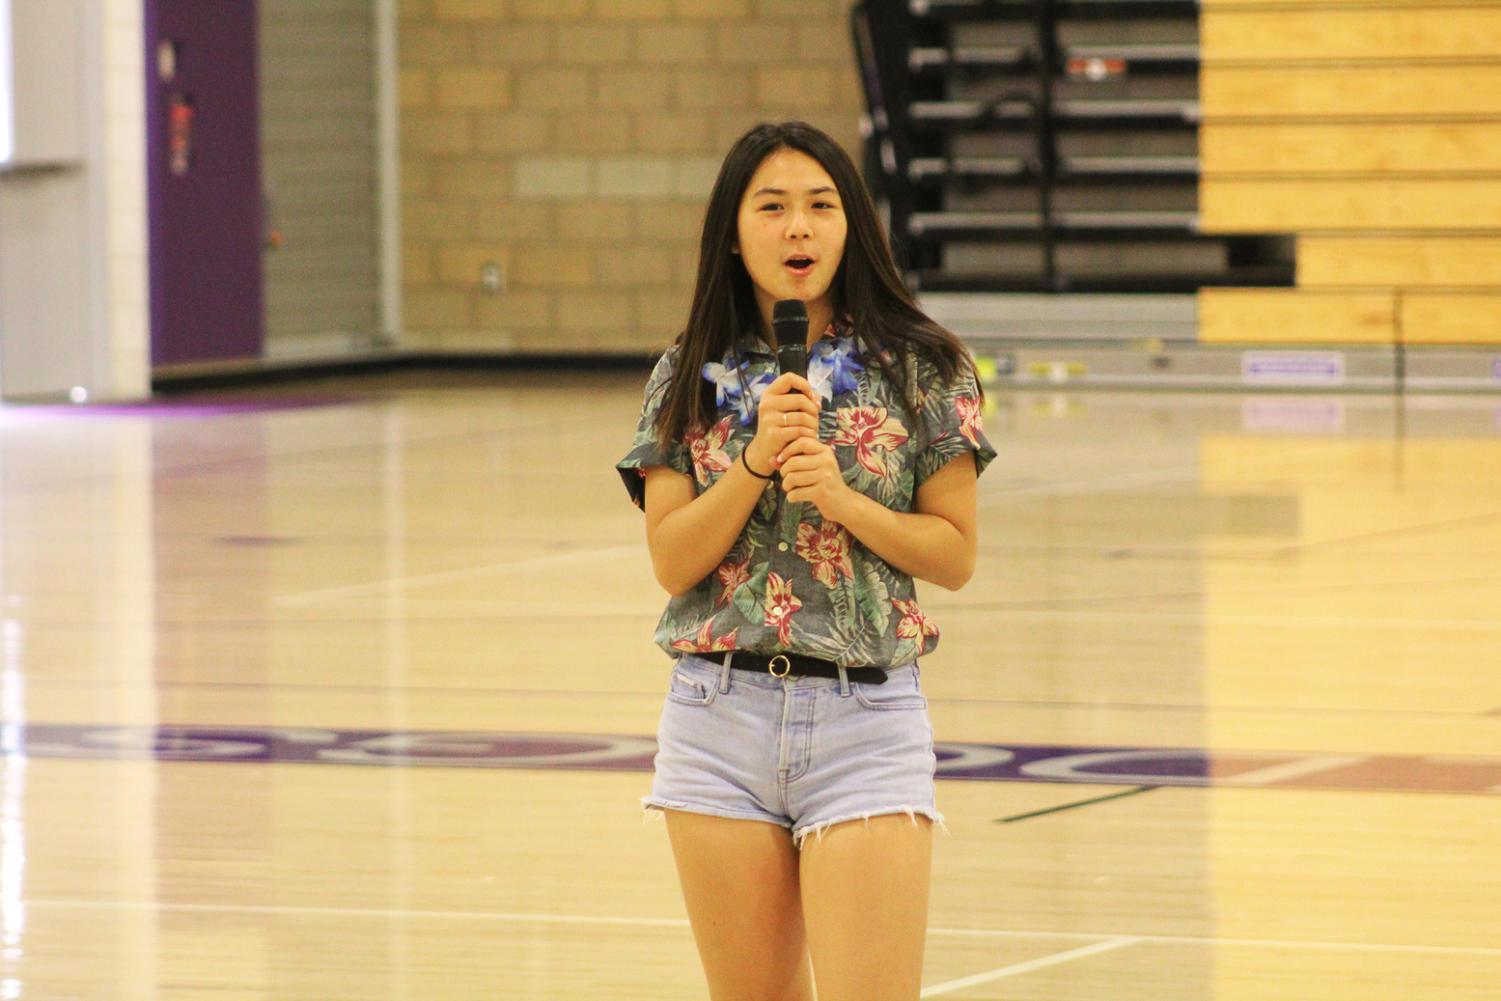 Spirit and rally commissioner and future vice president Lauren Hwang leads the crowd in a cheer to kick off the rally.